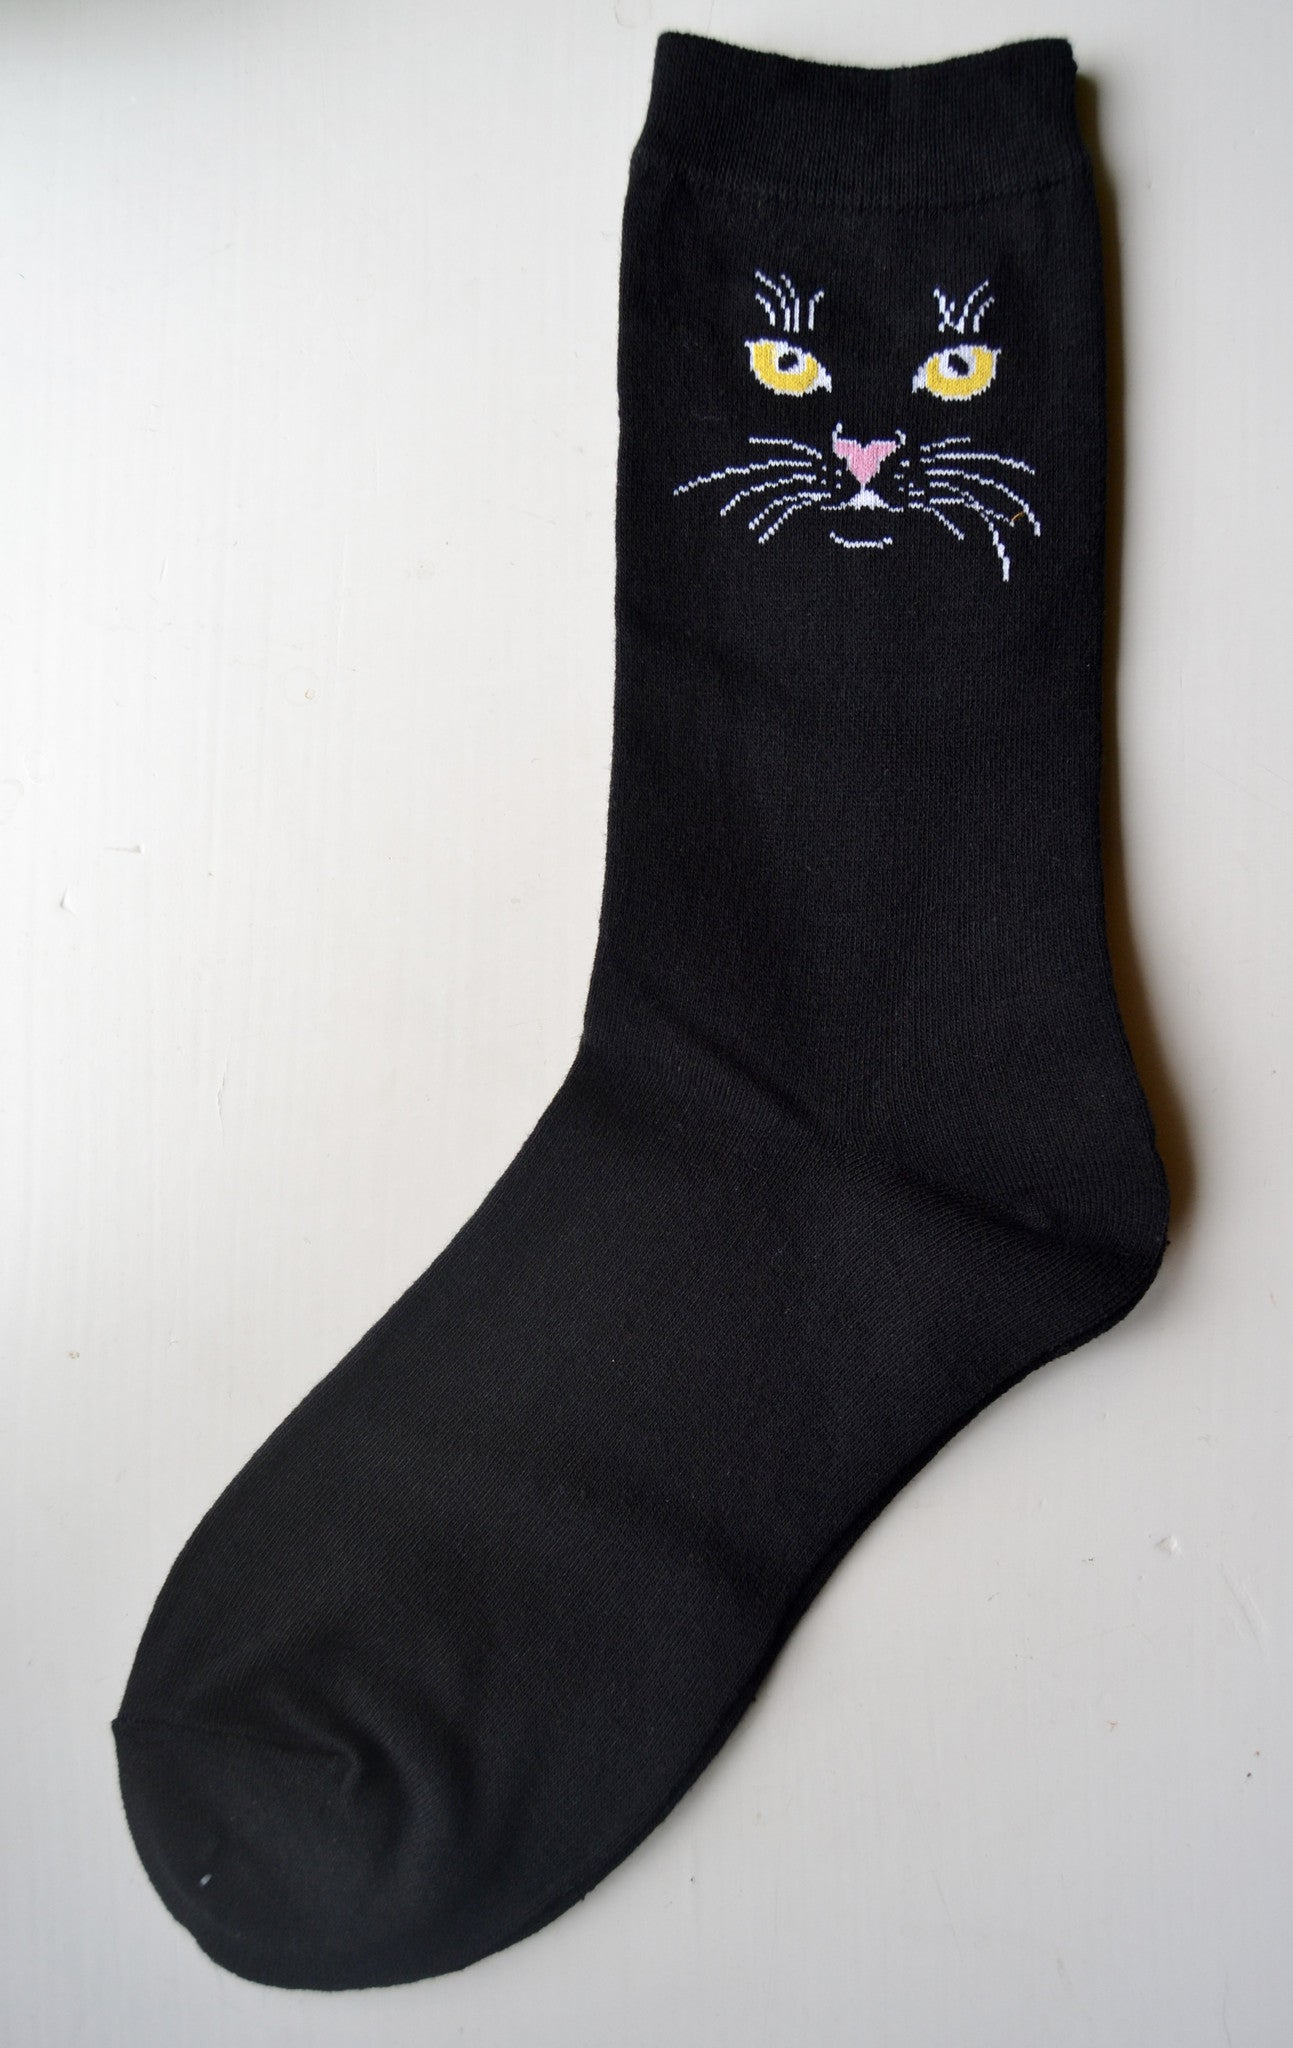 Women's Black Cat Socks - Novelty Socks, Mens, Womens, Kids